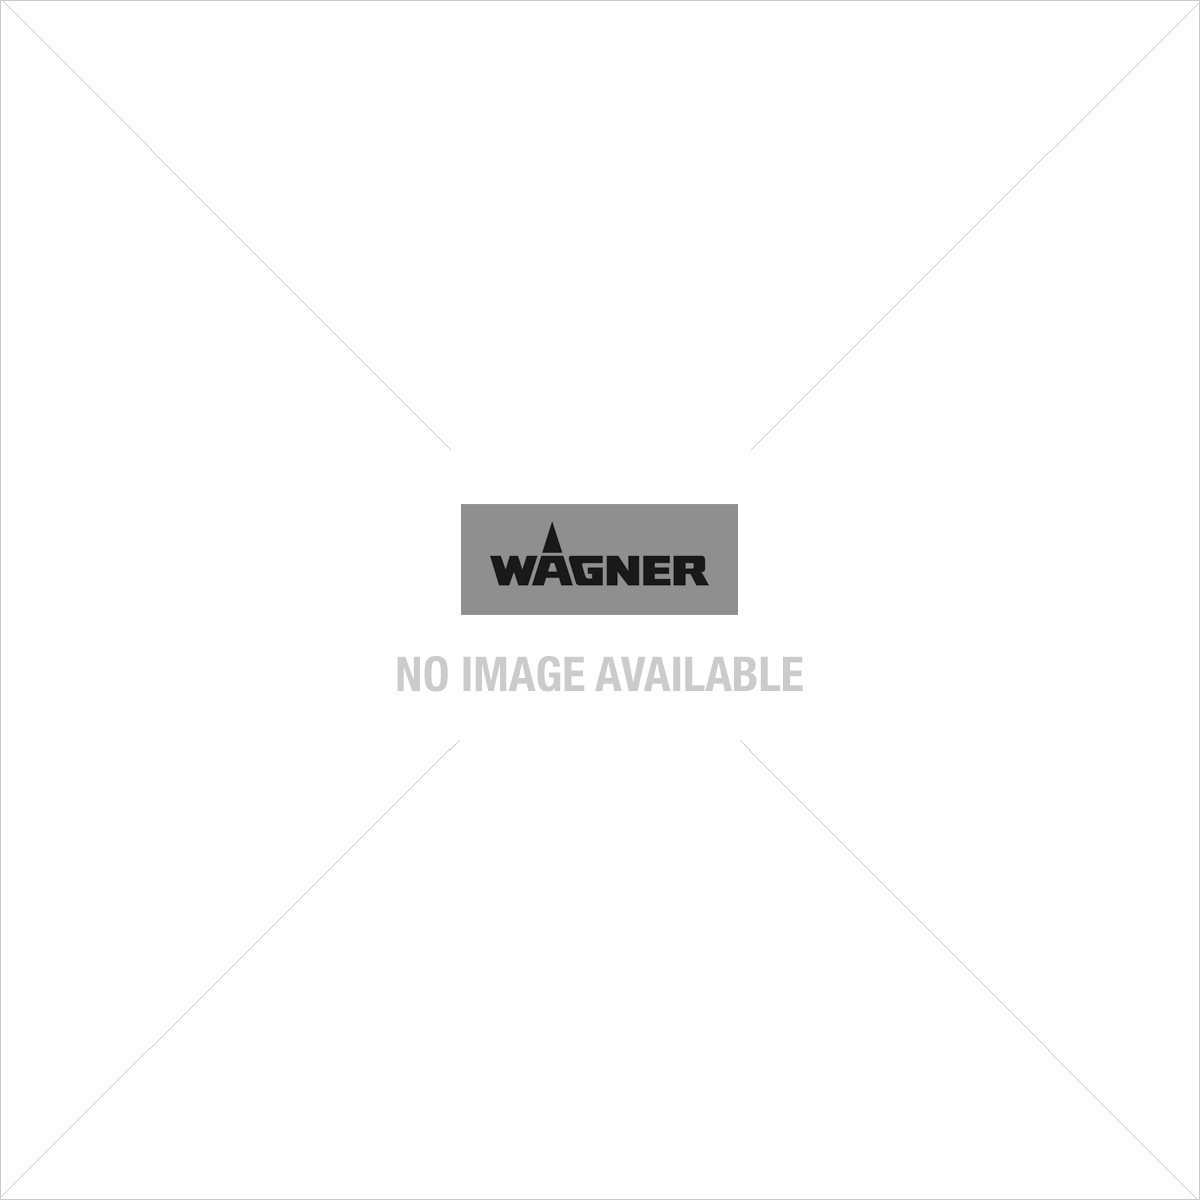 Wagner W 450 airless